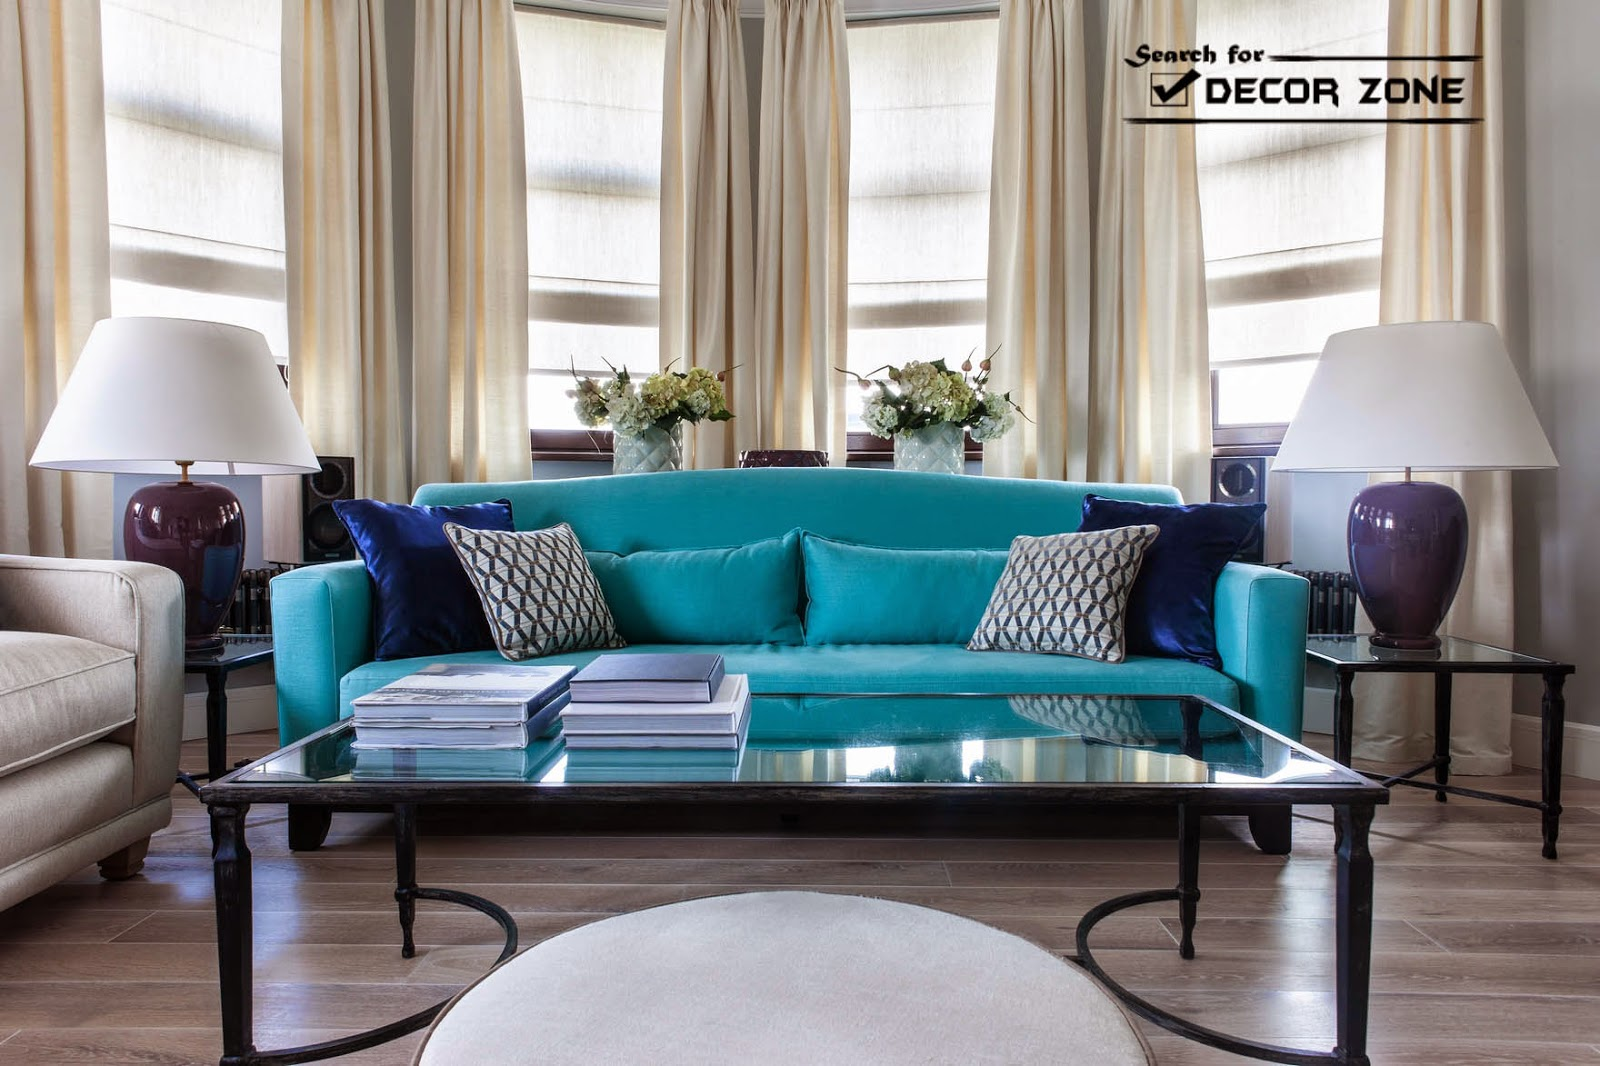 Living Room Modern Style Living Room Furniture contemporary living room furniture sets designs and ideas turquoise sofa white chairs